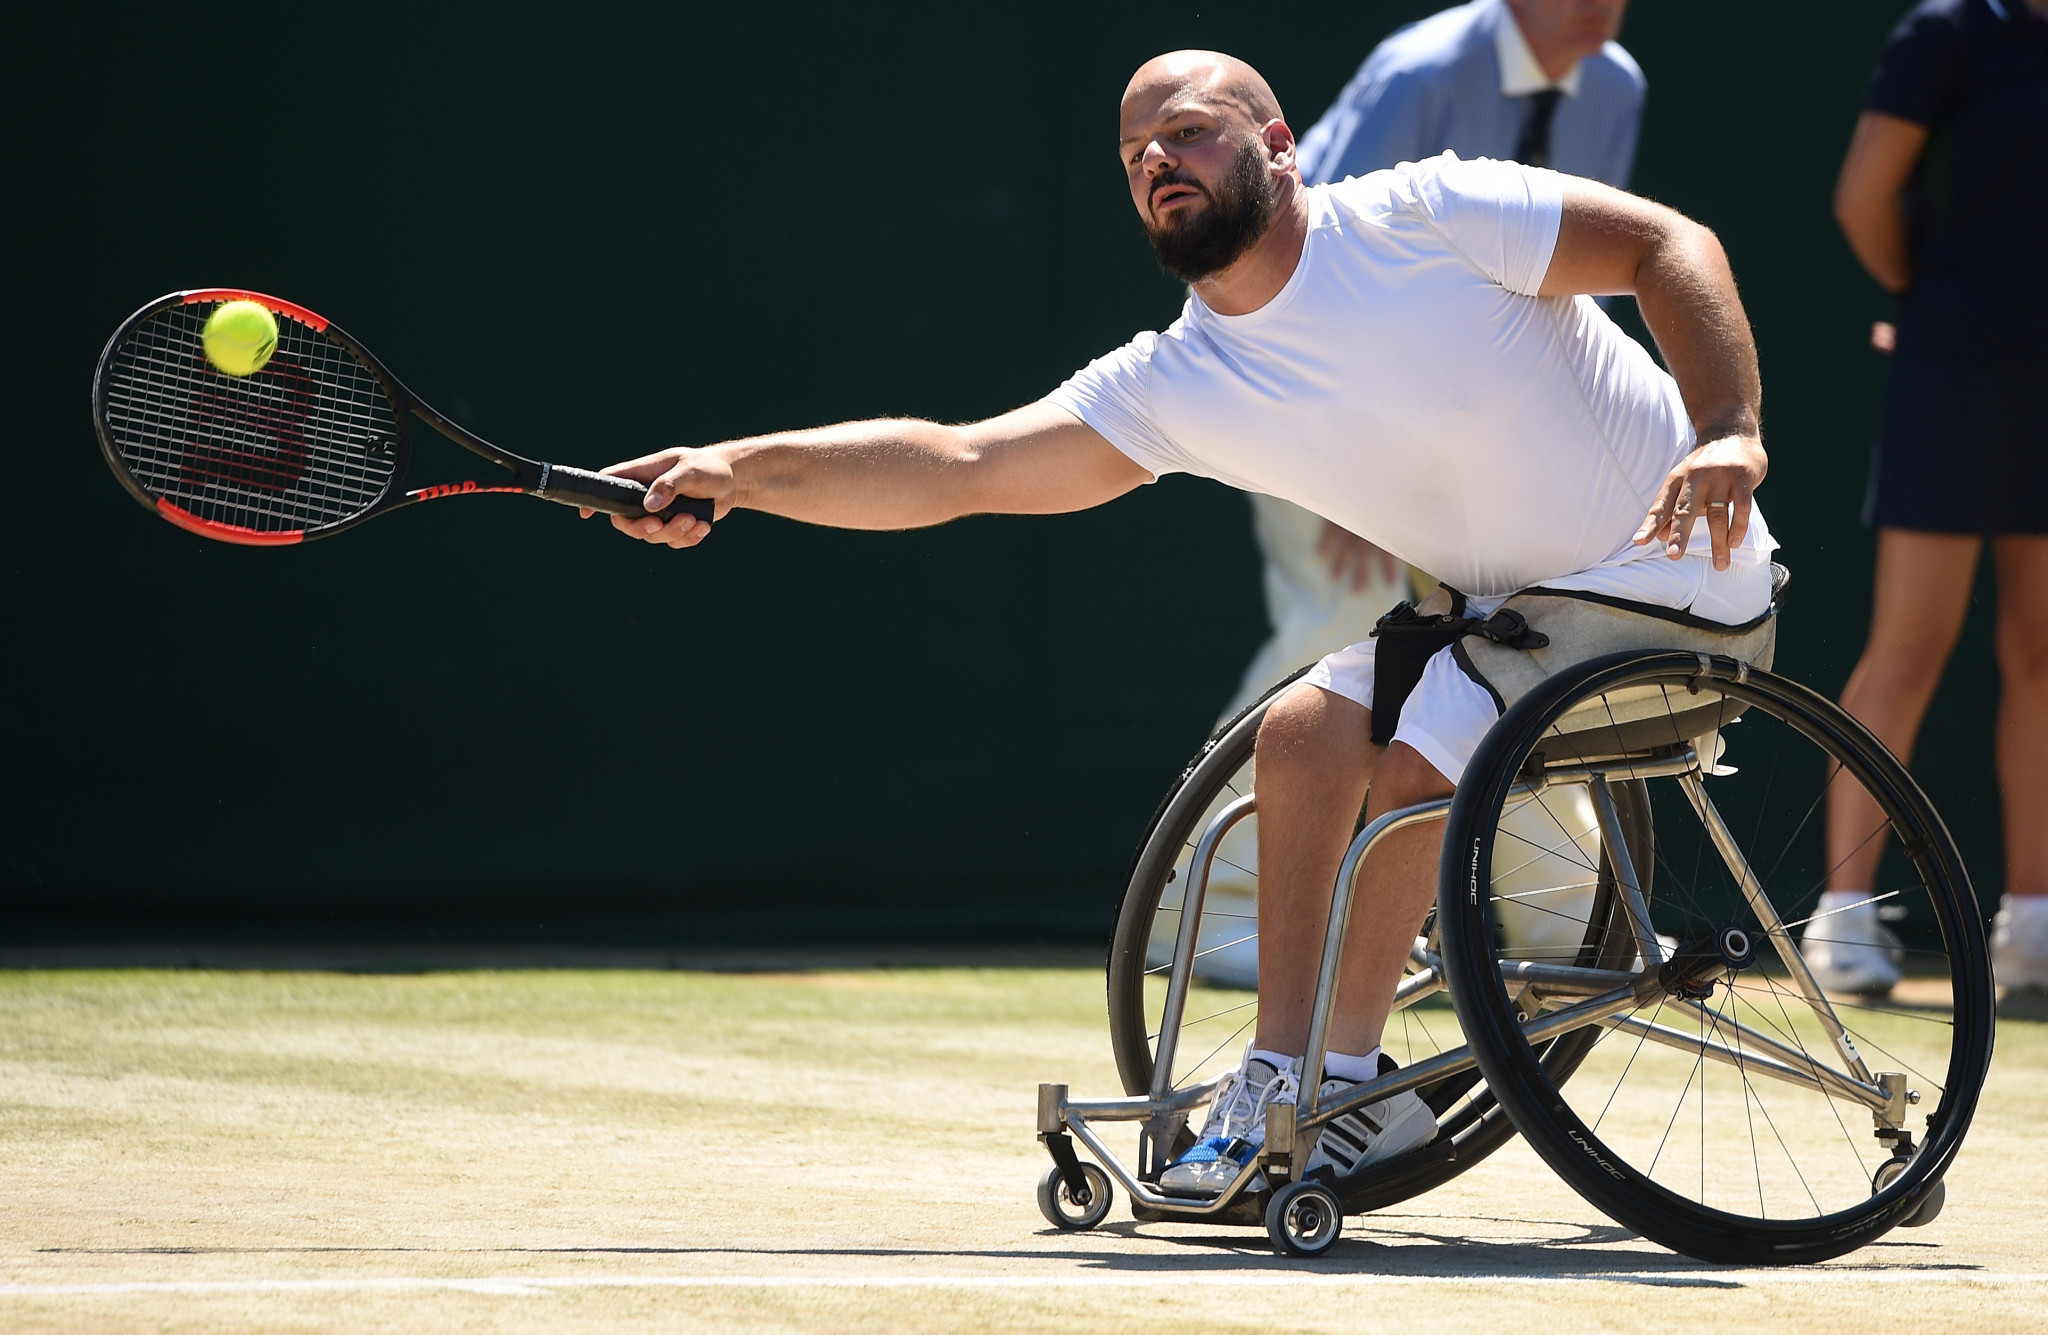 Olsson repeats history as he defends Wimbledon men's wheelchair singles title against Fernández